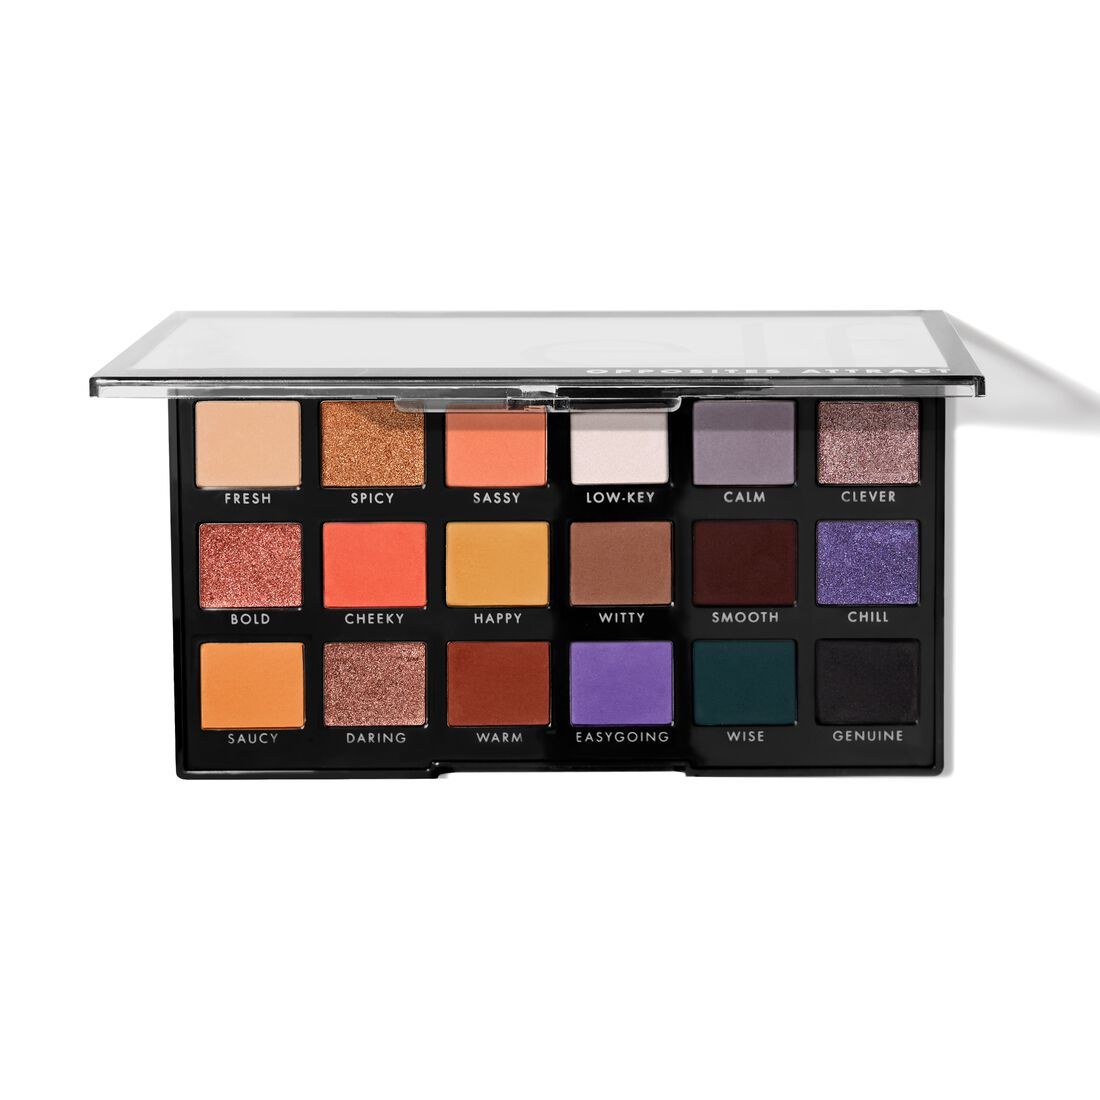 e.l.f. Cosmetics Opposites Attract Eyeshadow Palette